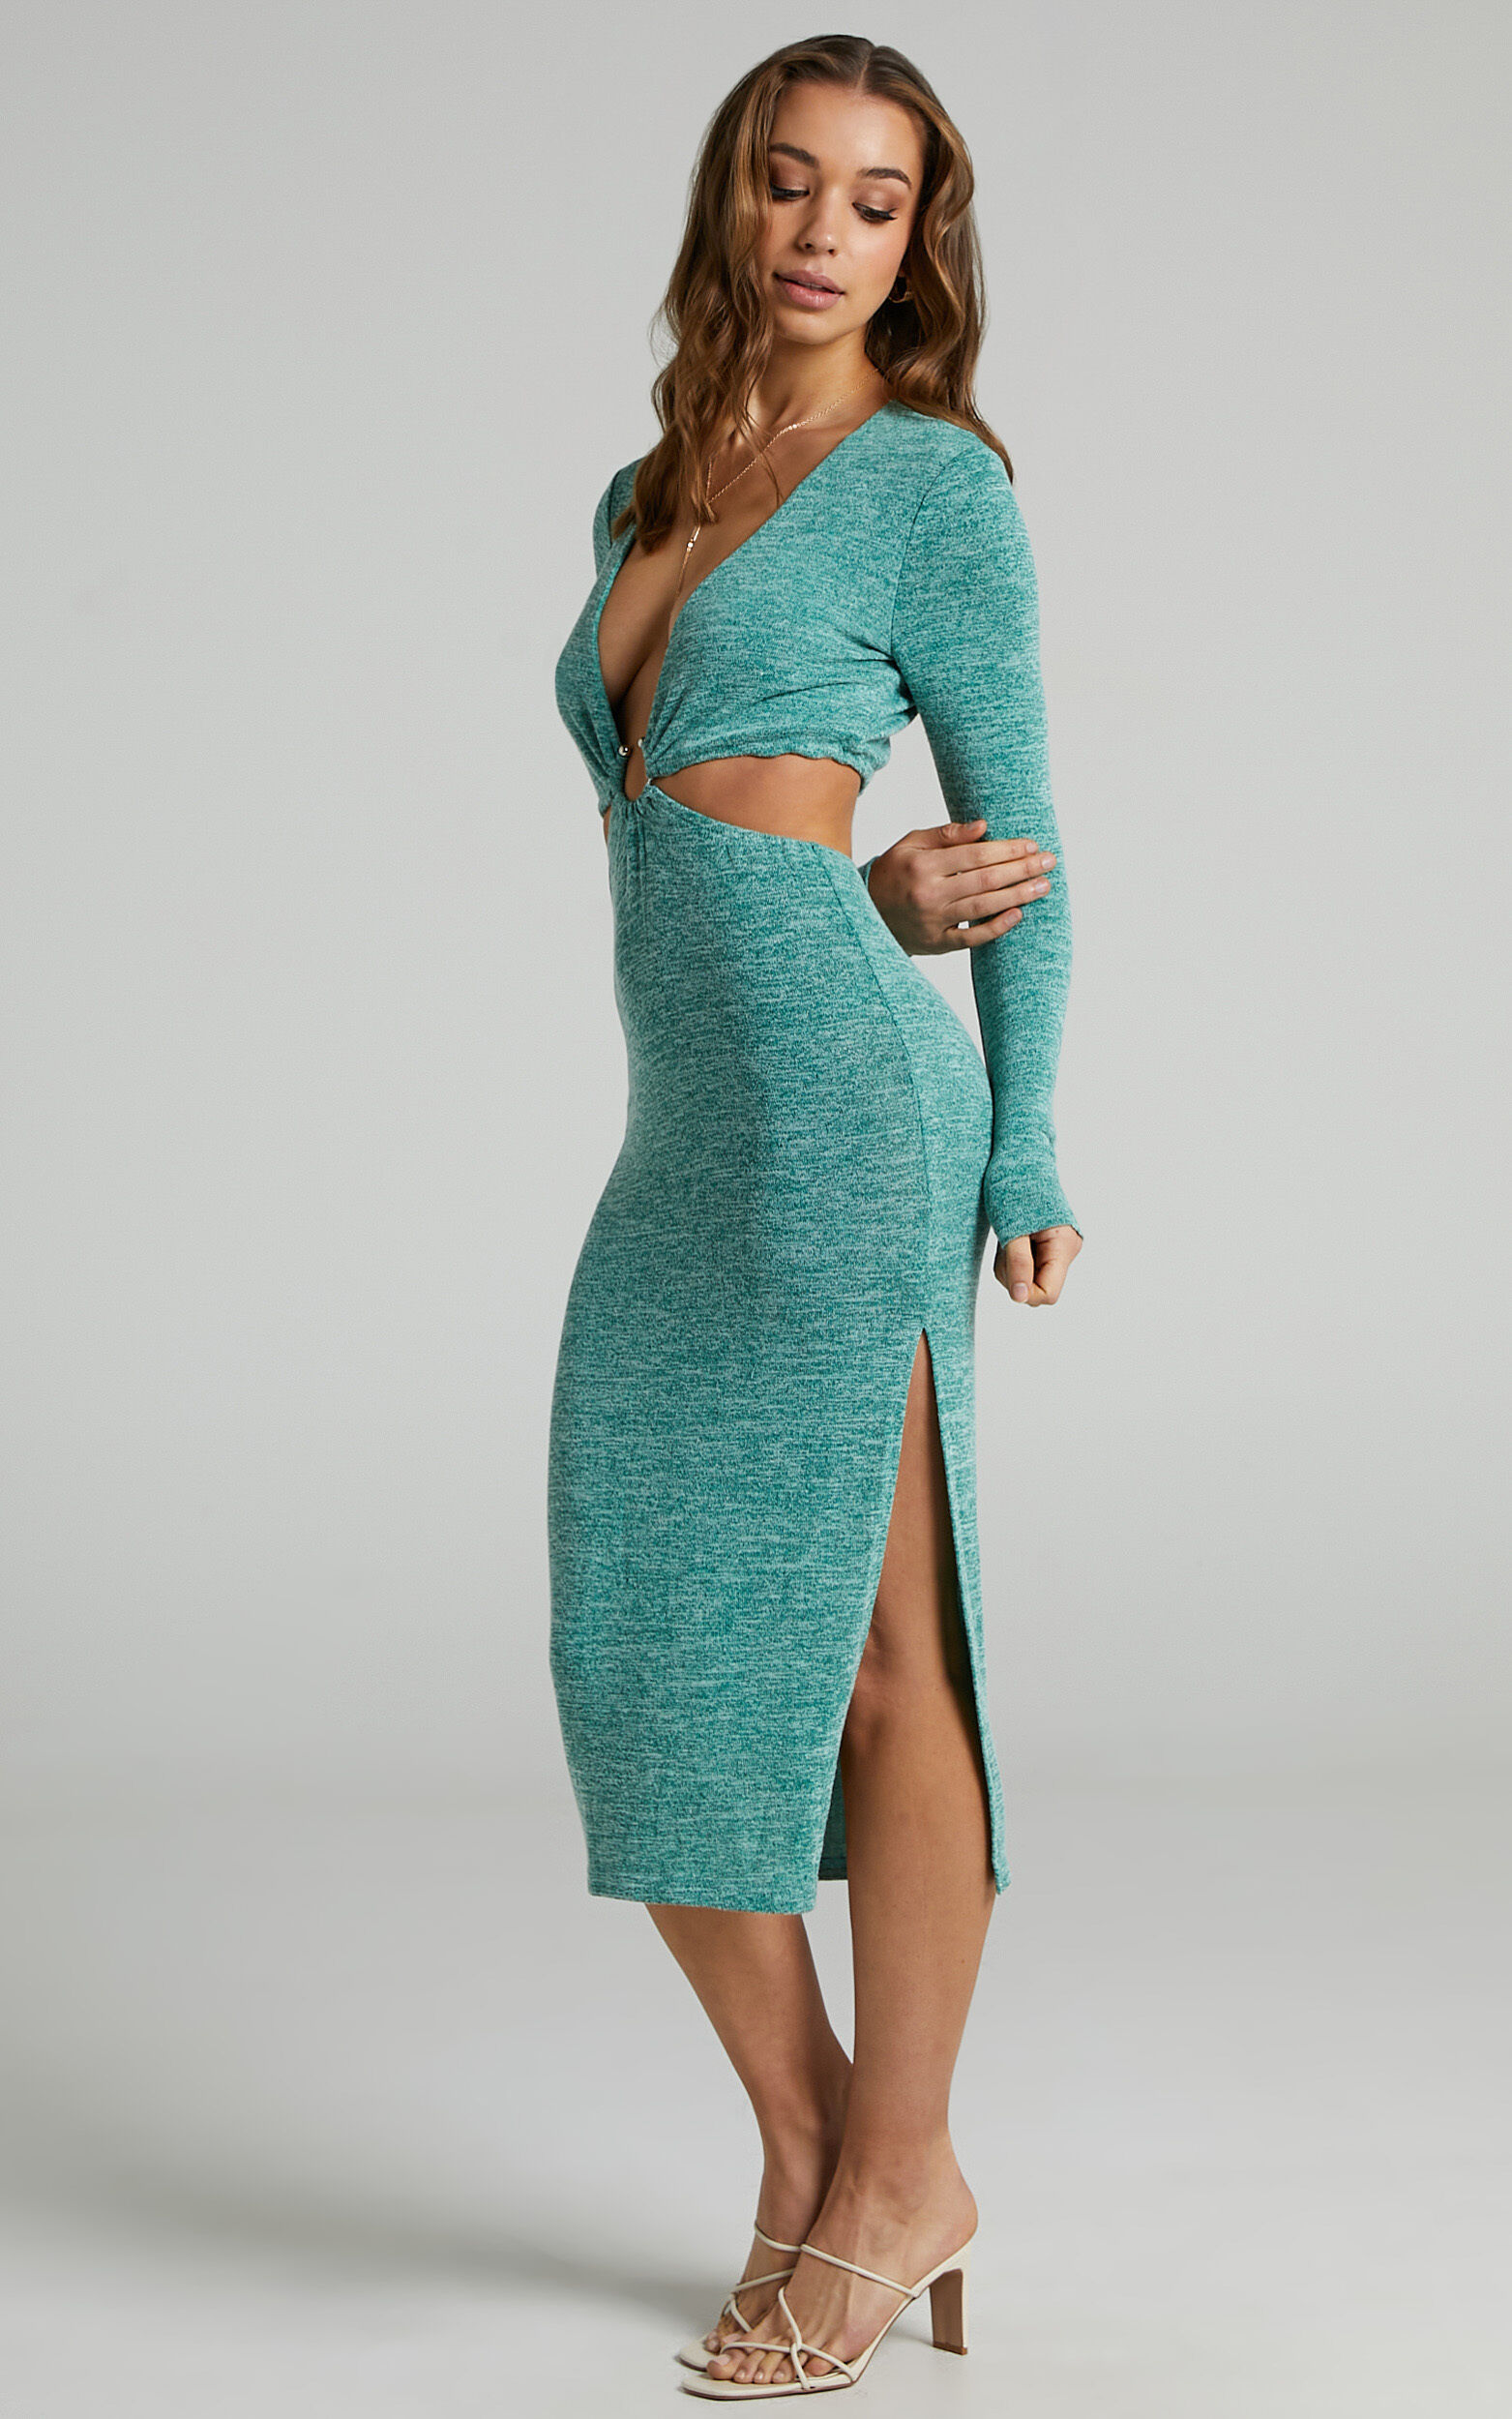 Ariah Cut Out Space Dye Midi Dress in Green Space Dye - 06, GRN1, super-hi-res image number null